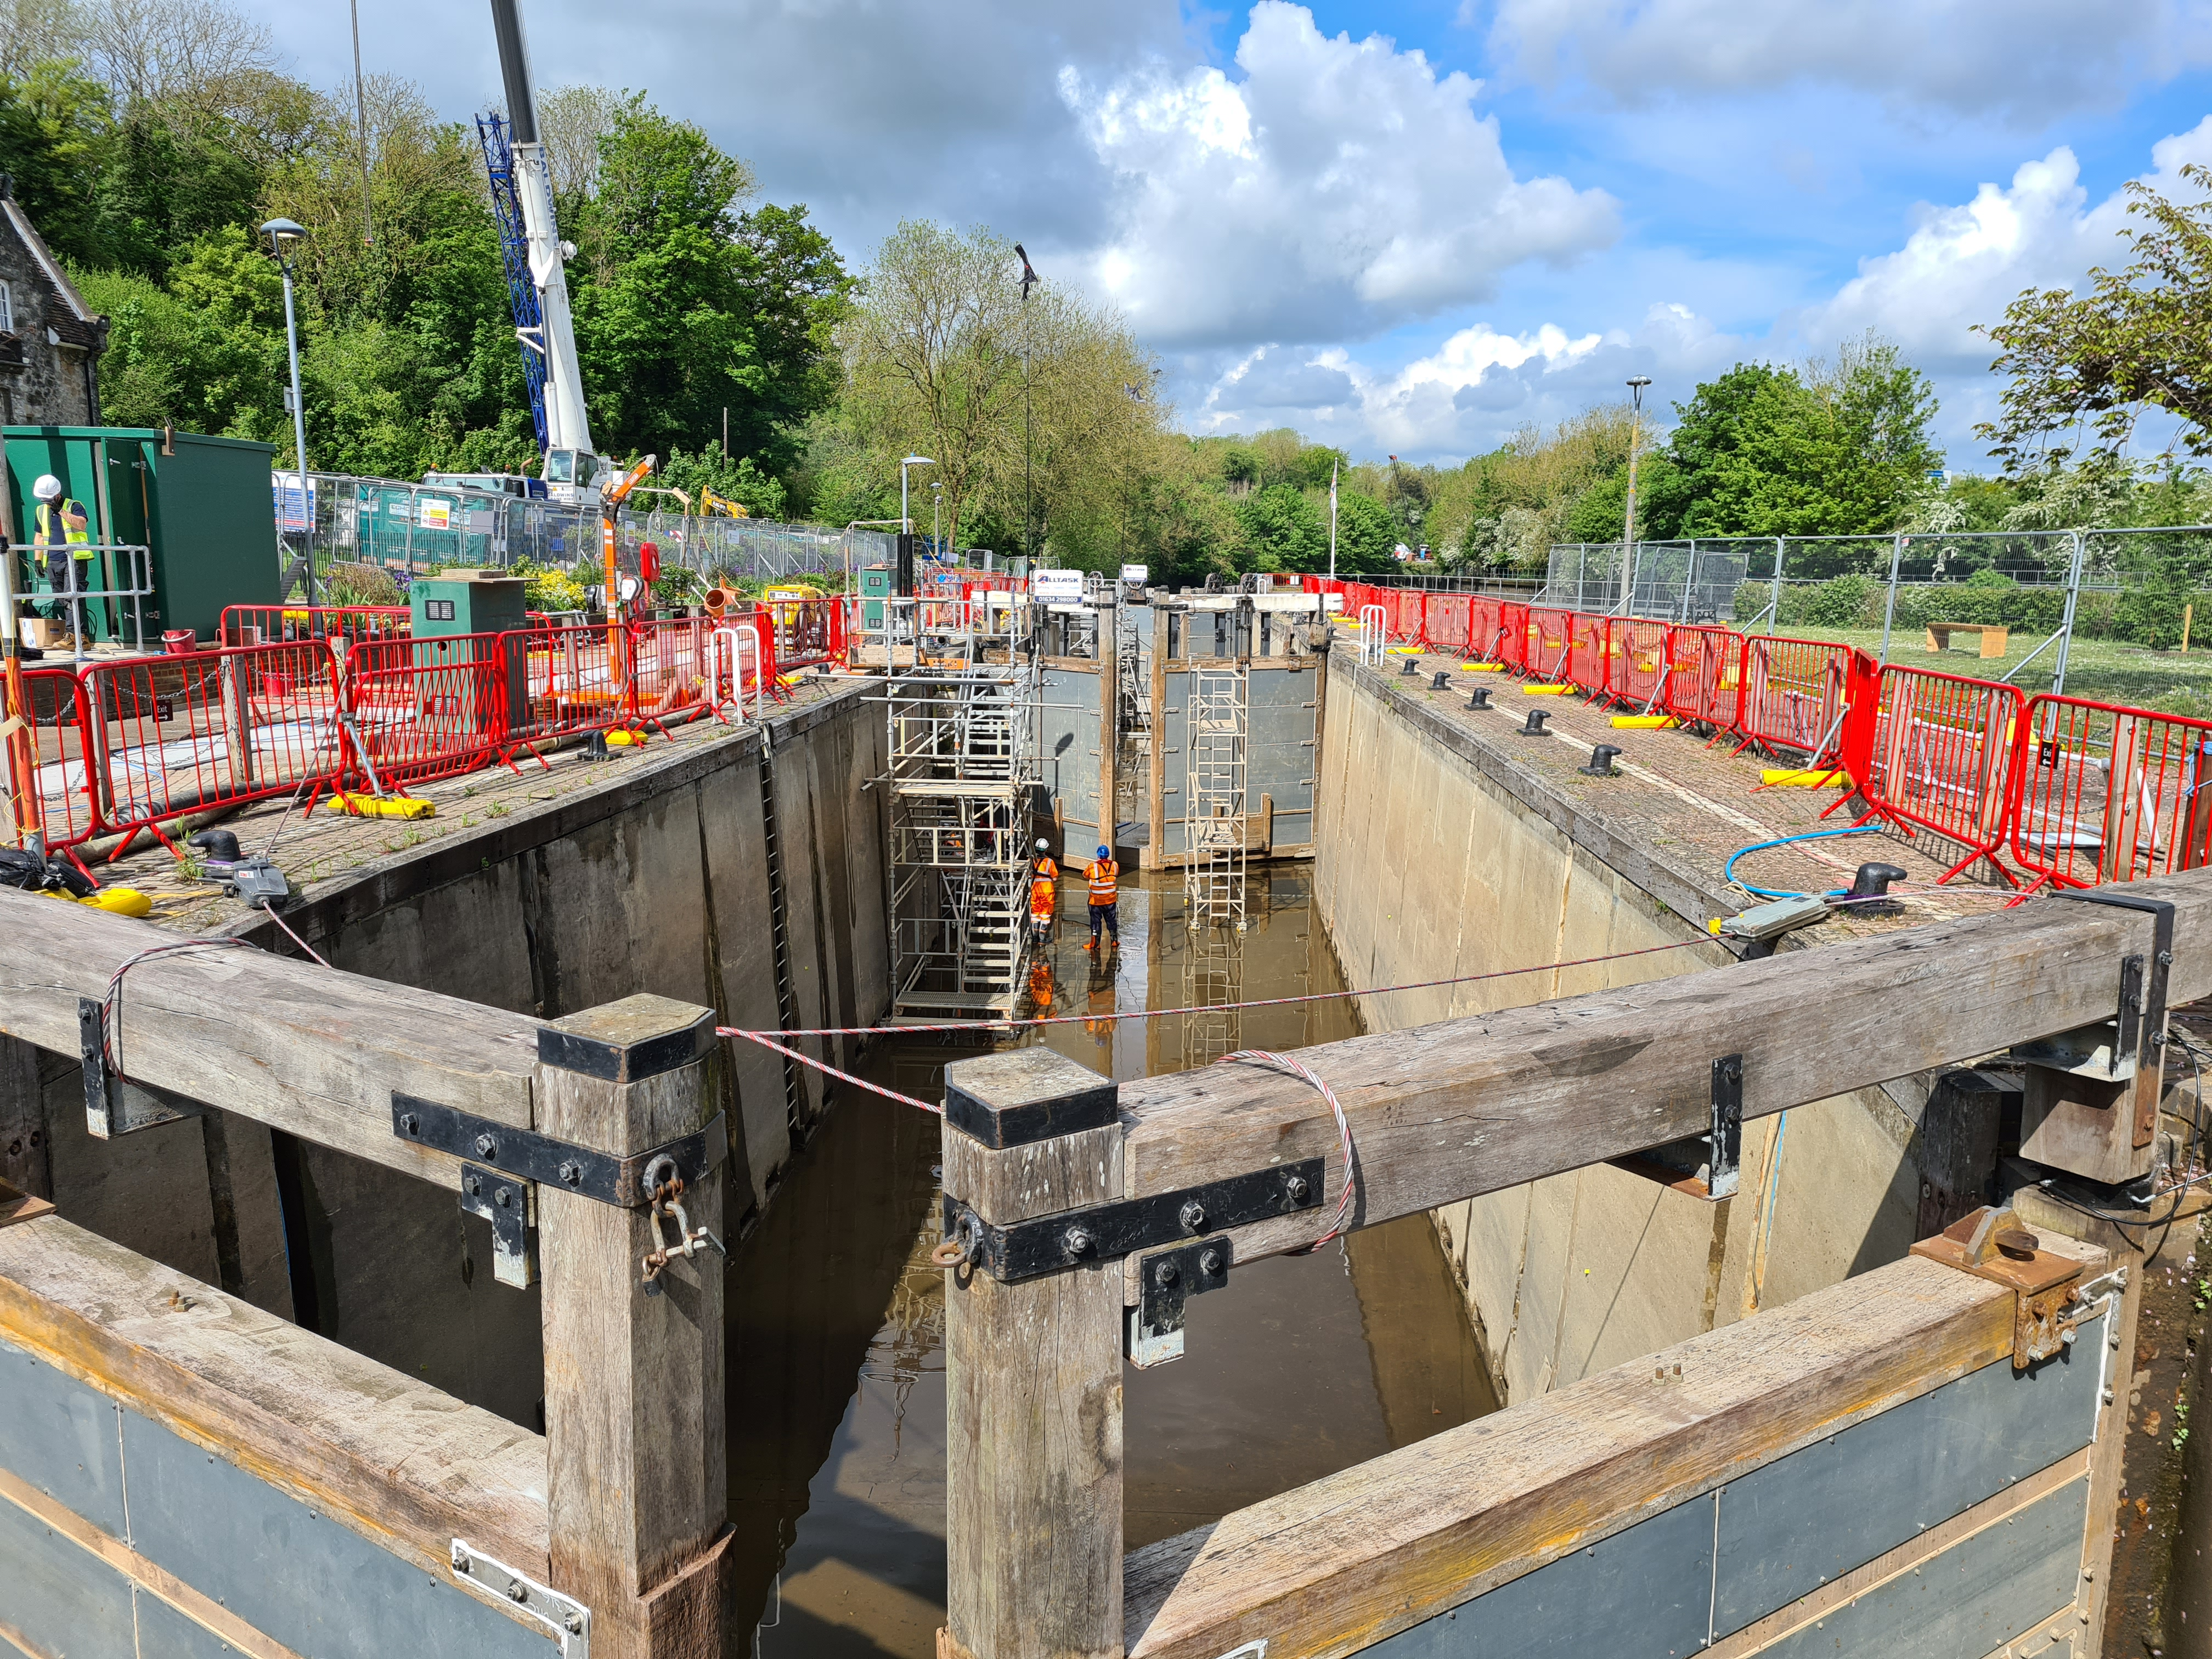 Major refurbishment works were underway at Allington Lock. The Environment Agency were investing £2.1 million in replacement hydraulic and electrical systems, back-up generator, new lock gates, new pintles, new cills and stop logs. No, I don't know what half that stuff is either